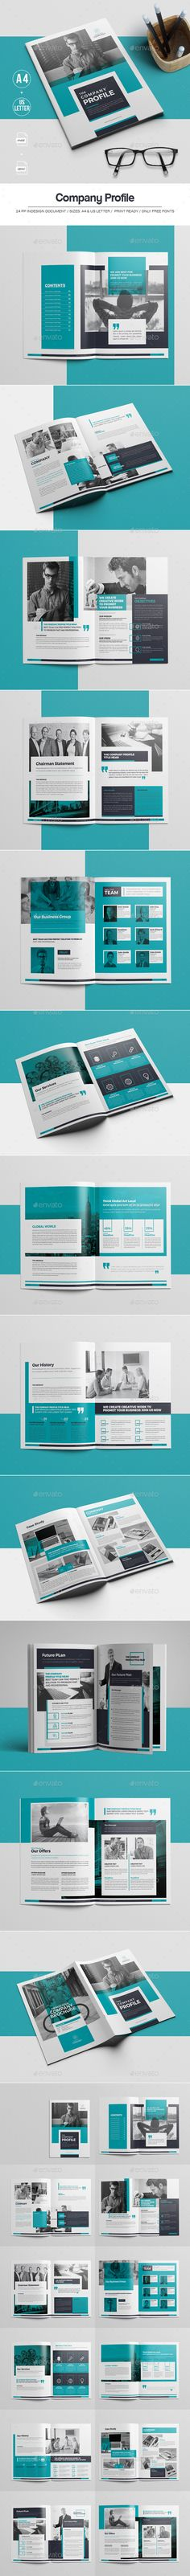 Company Profile Brochure Template InDesign INDD - 24 Custom Pages, A4 & US letter Size